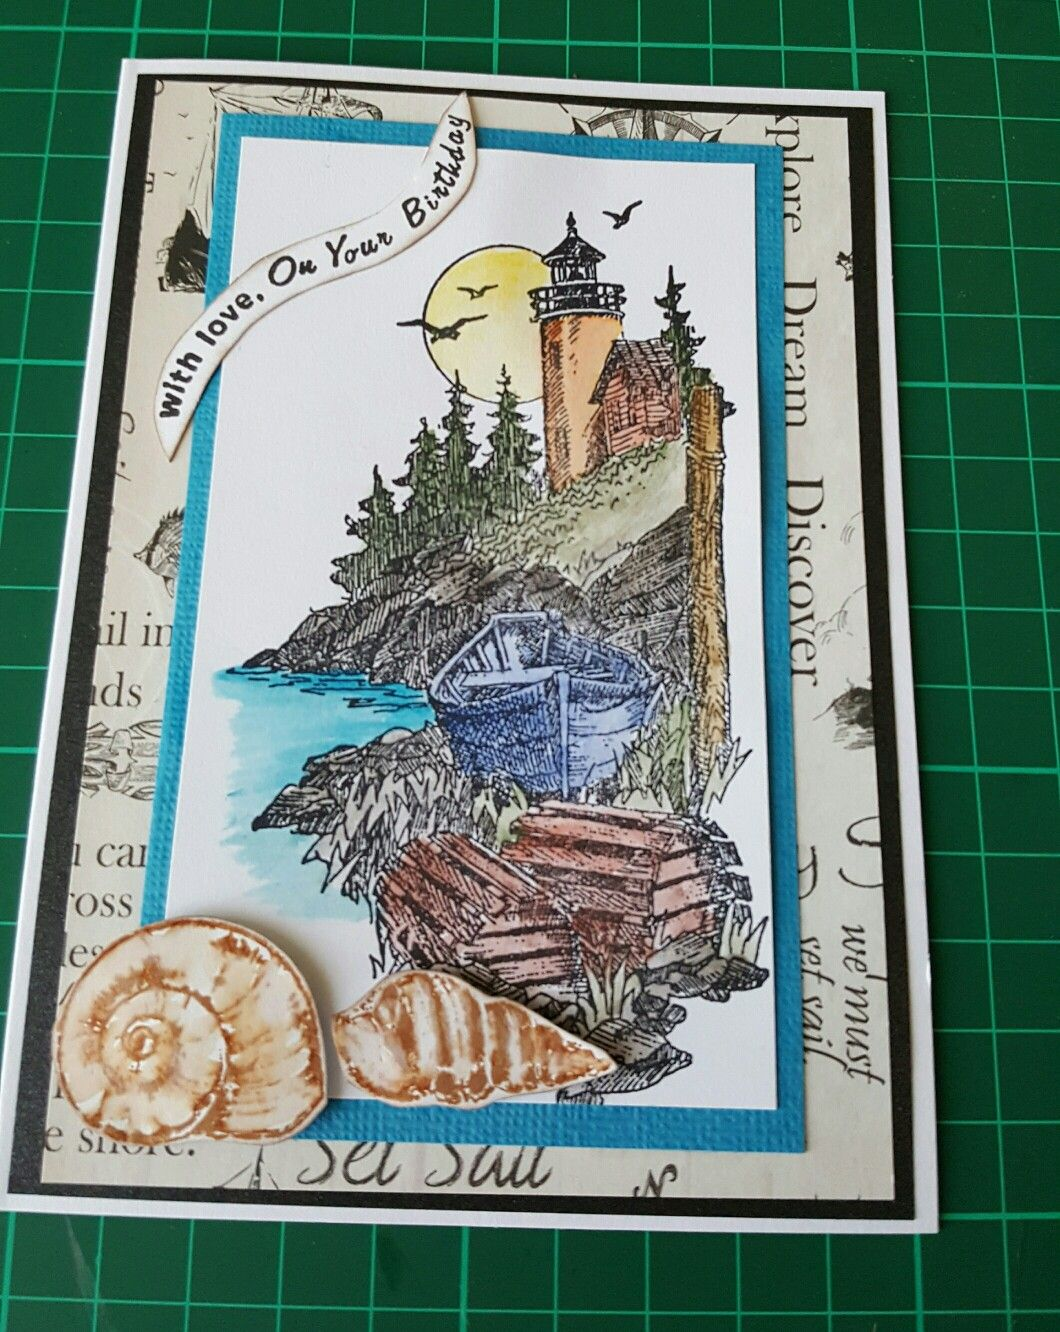 Pin by Helen FinchamTurner on My cards I card, Cards